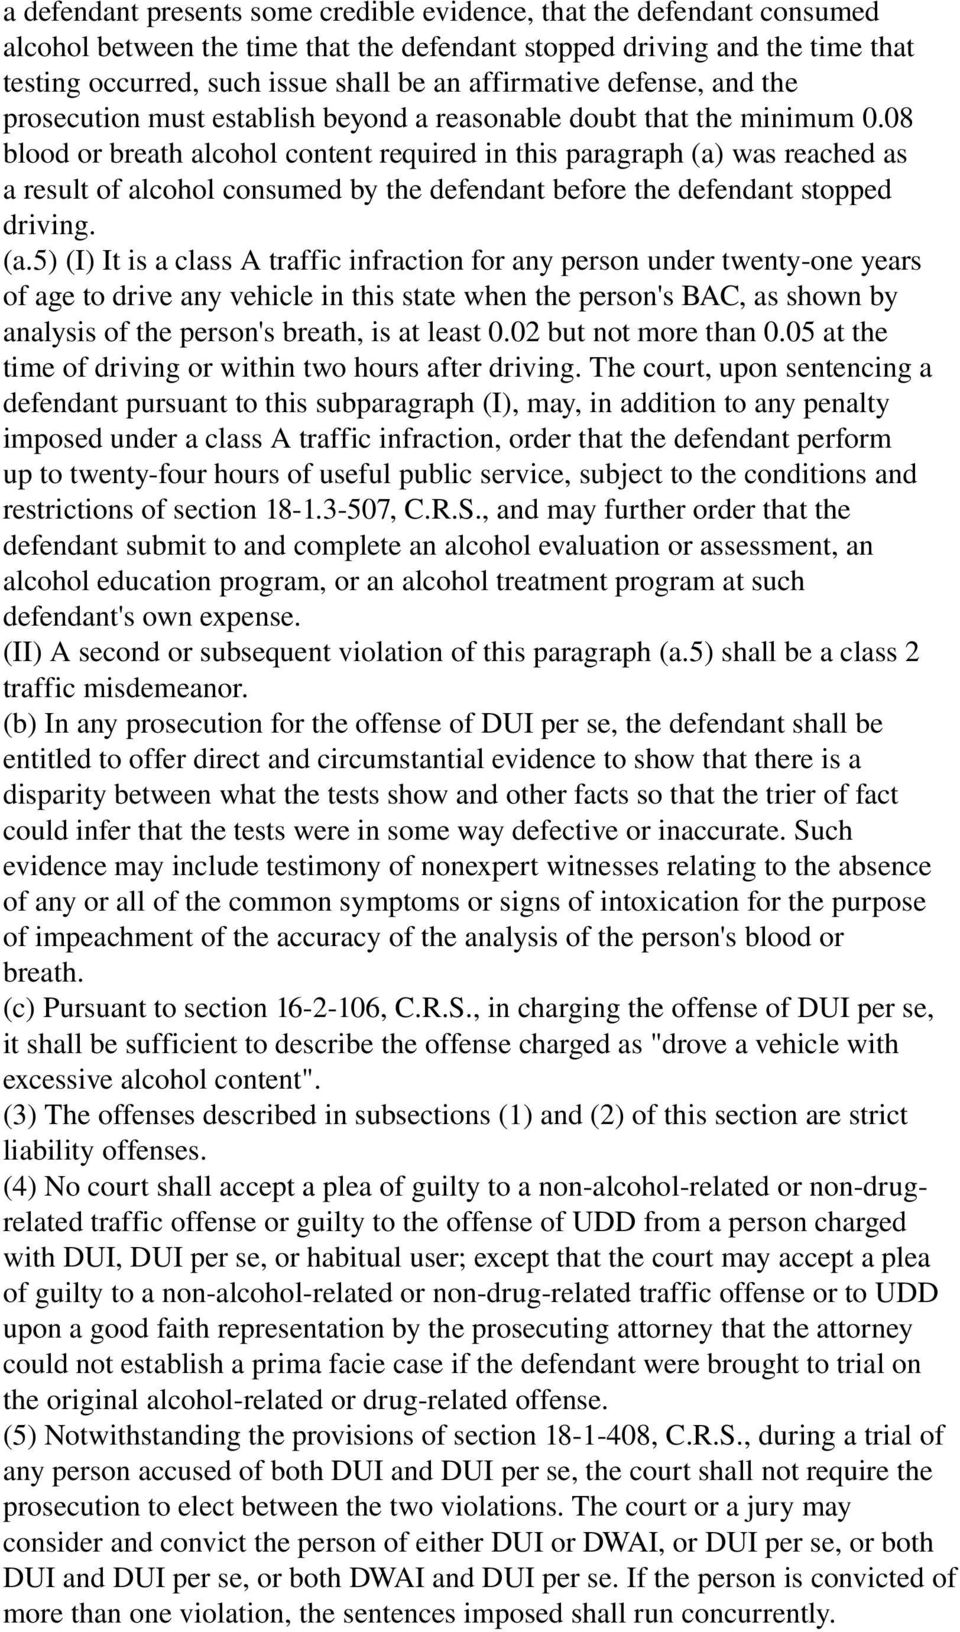 08 blood or breath alcohol content required in this paragraph (a)